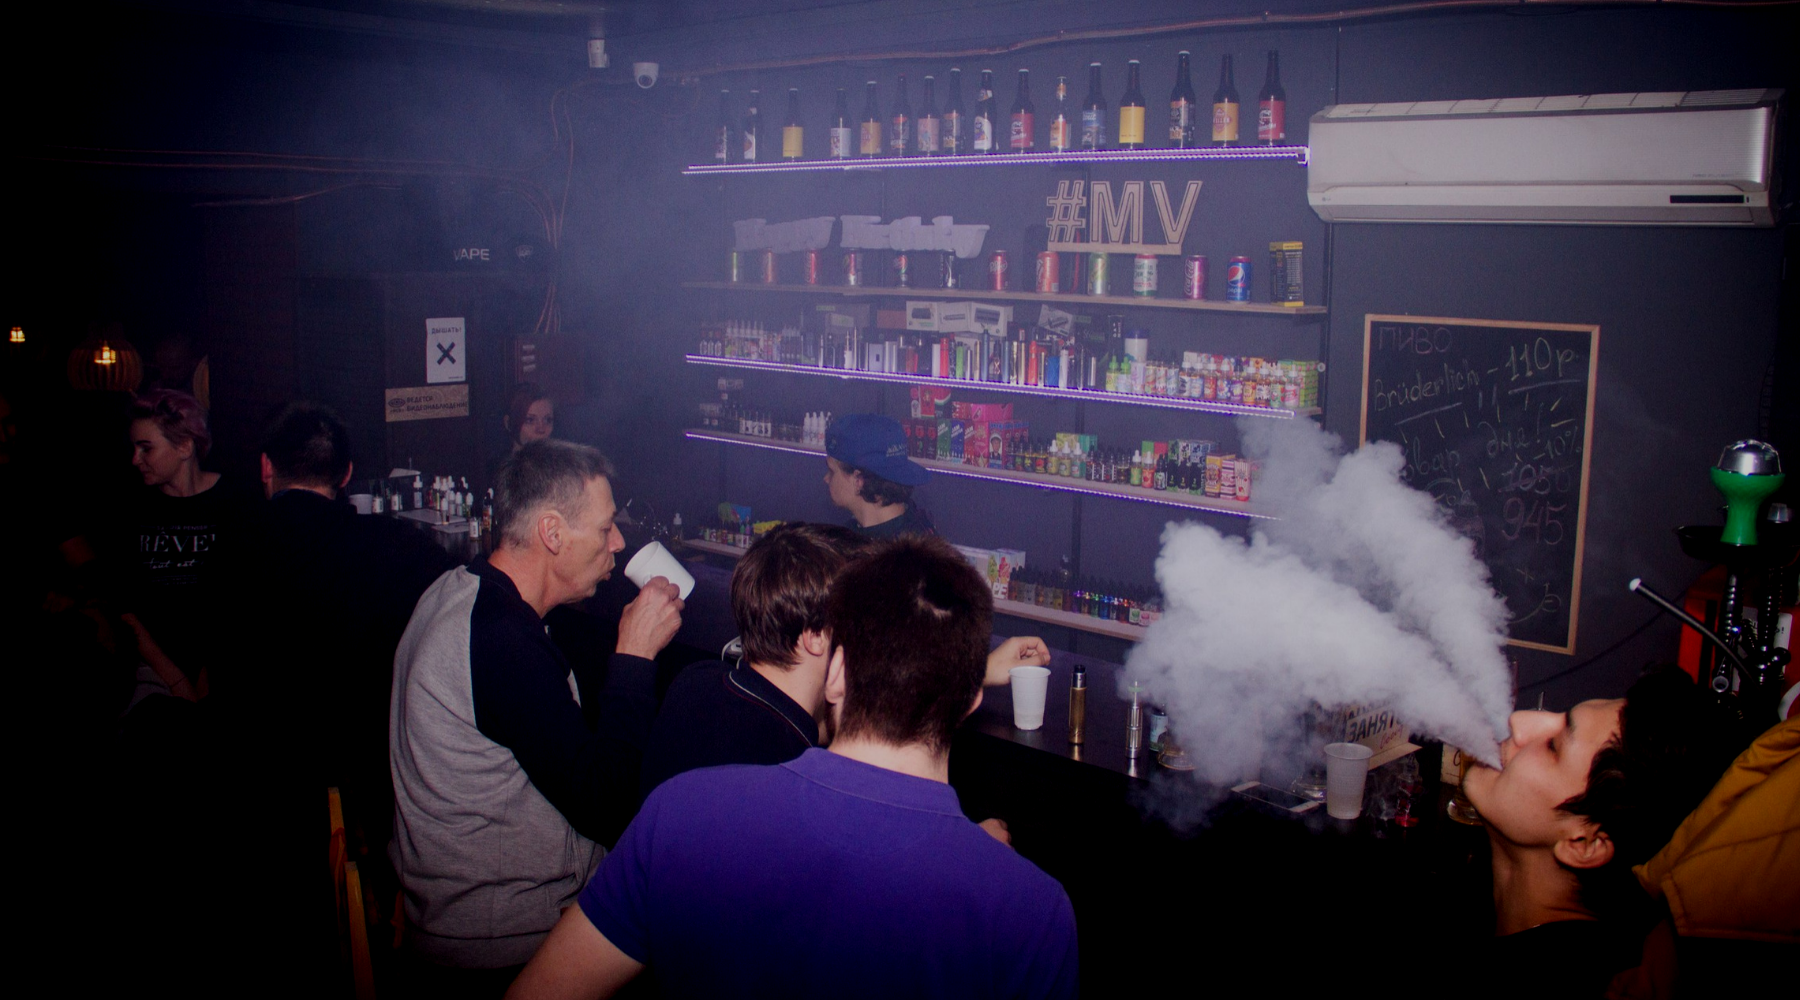 Vape Shop in York, UK